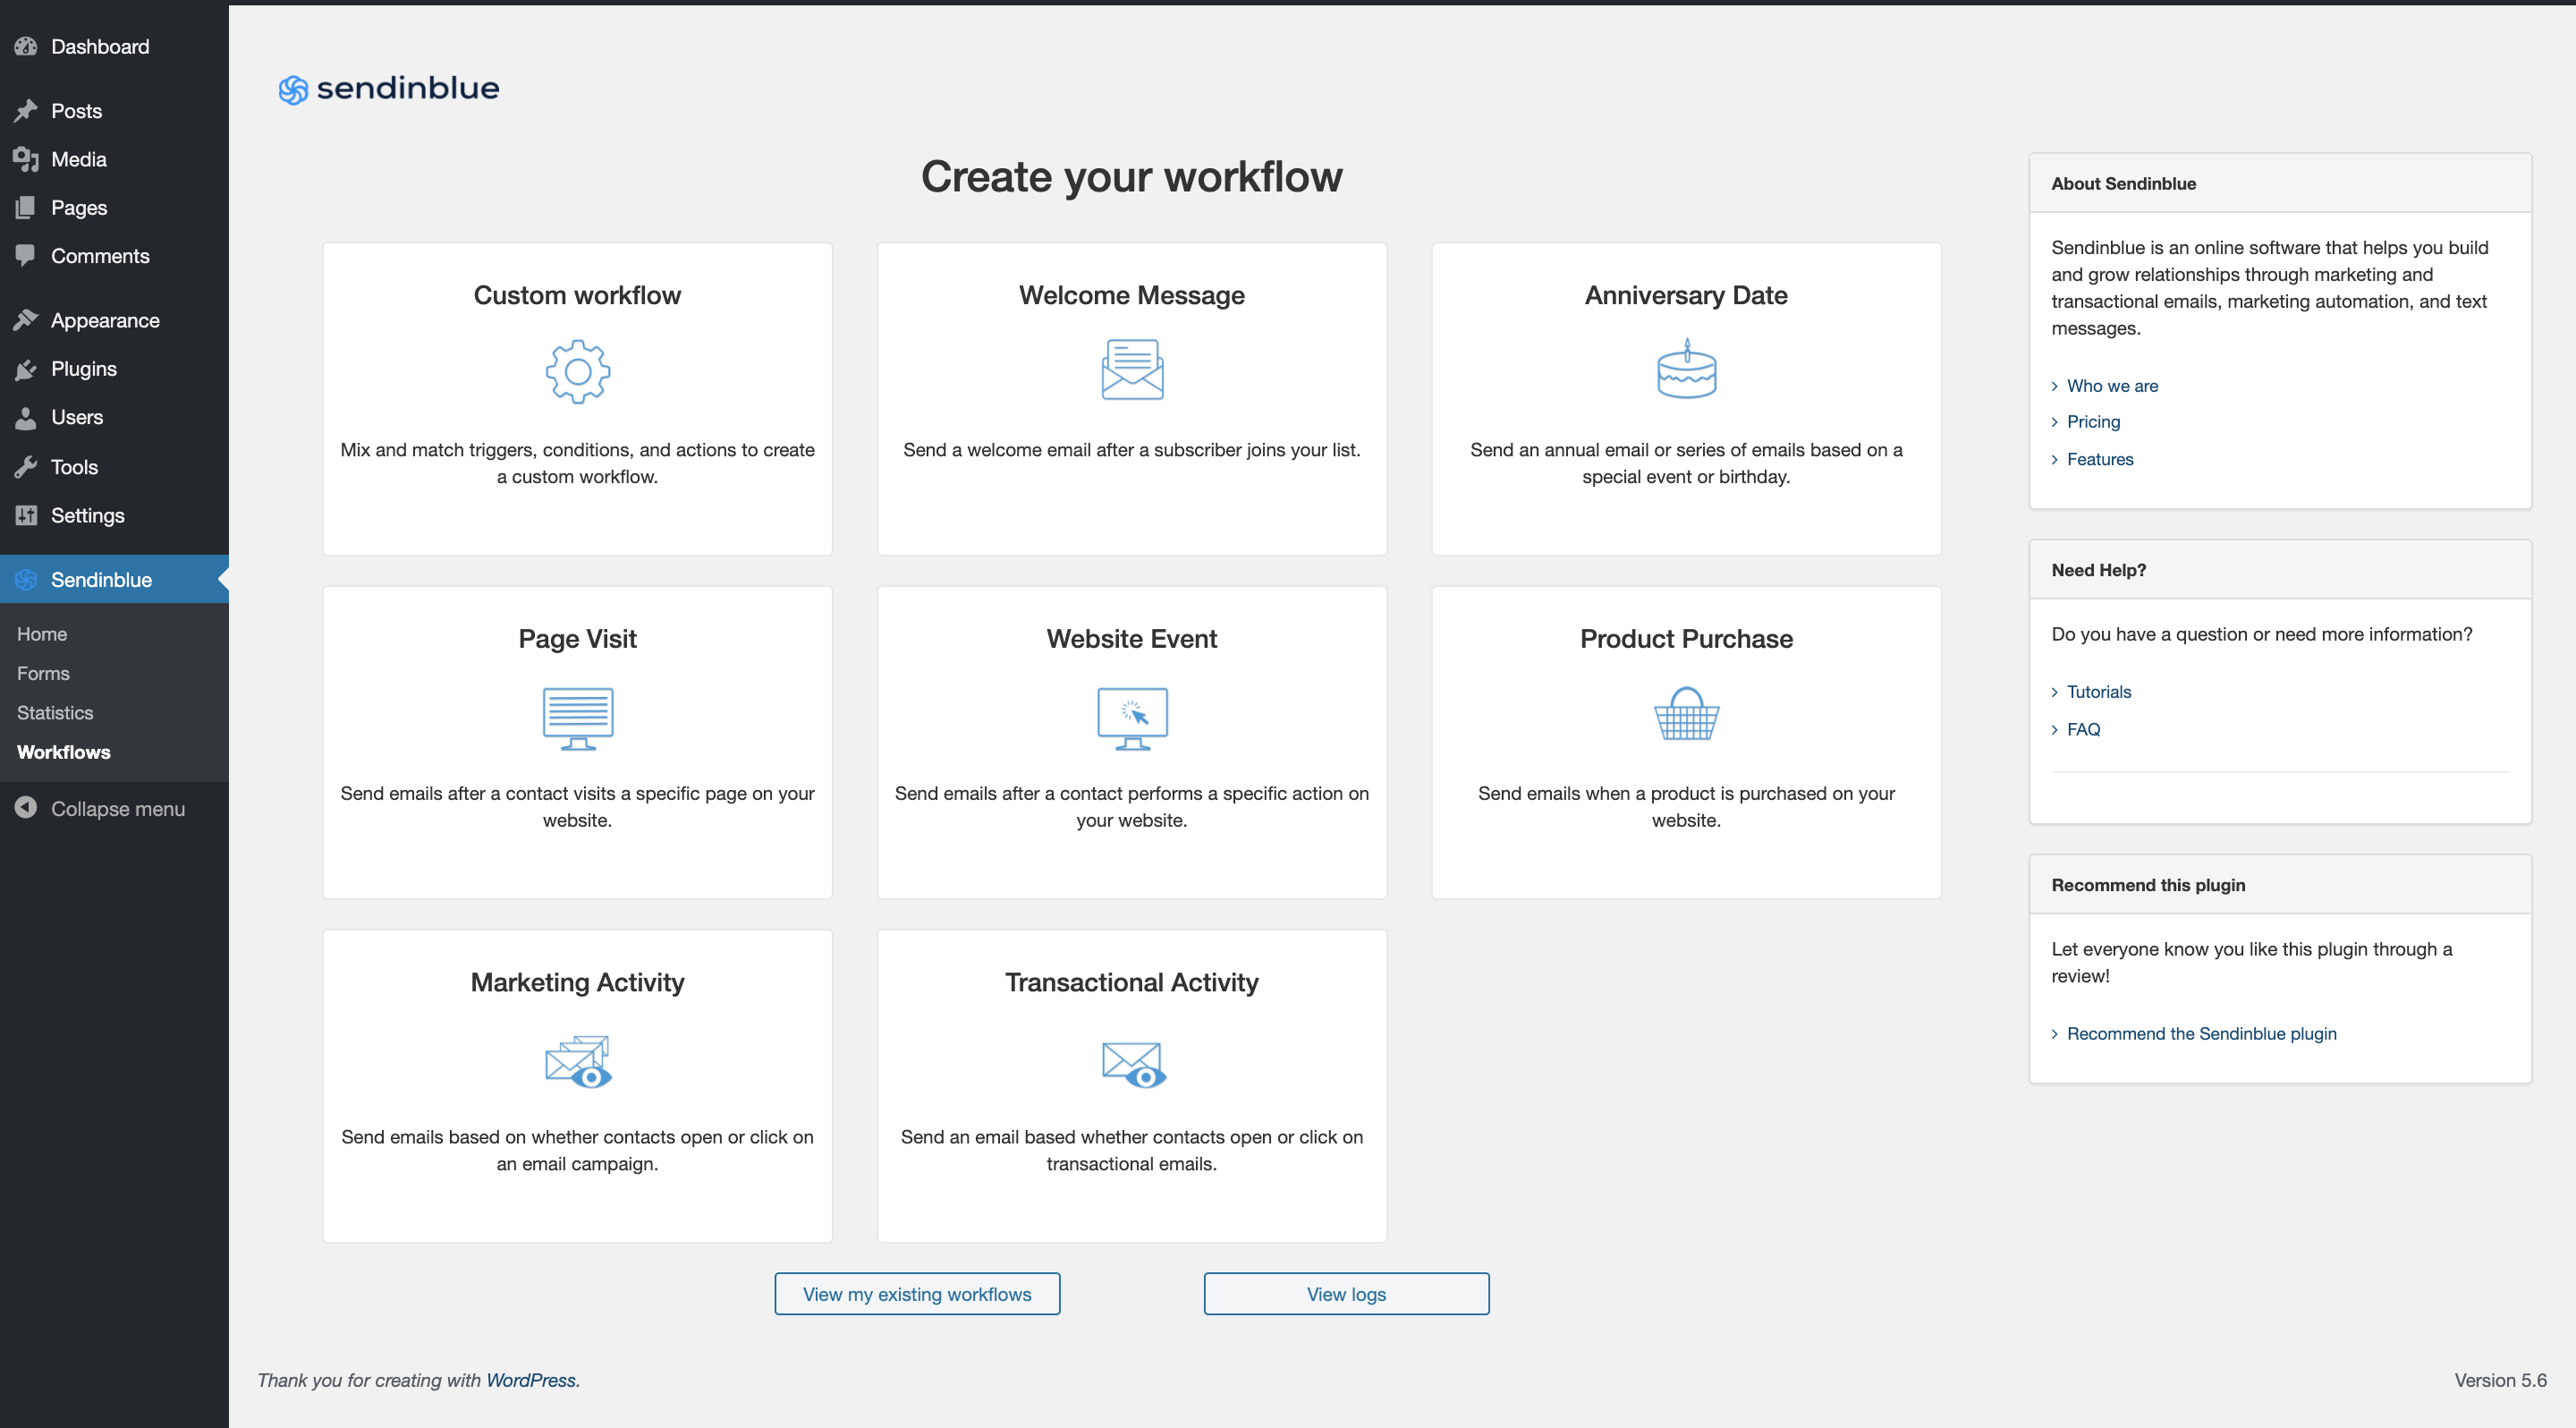 The Workflows page (Marketing Automation activated) allows you to create new workflows in Sendinblue or access your logs or existing workflows